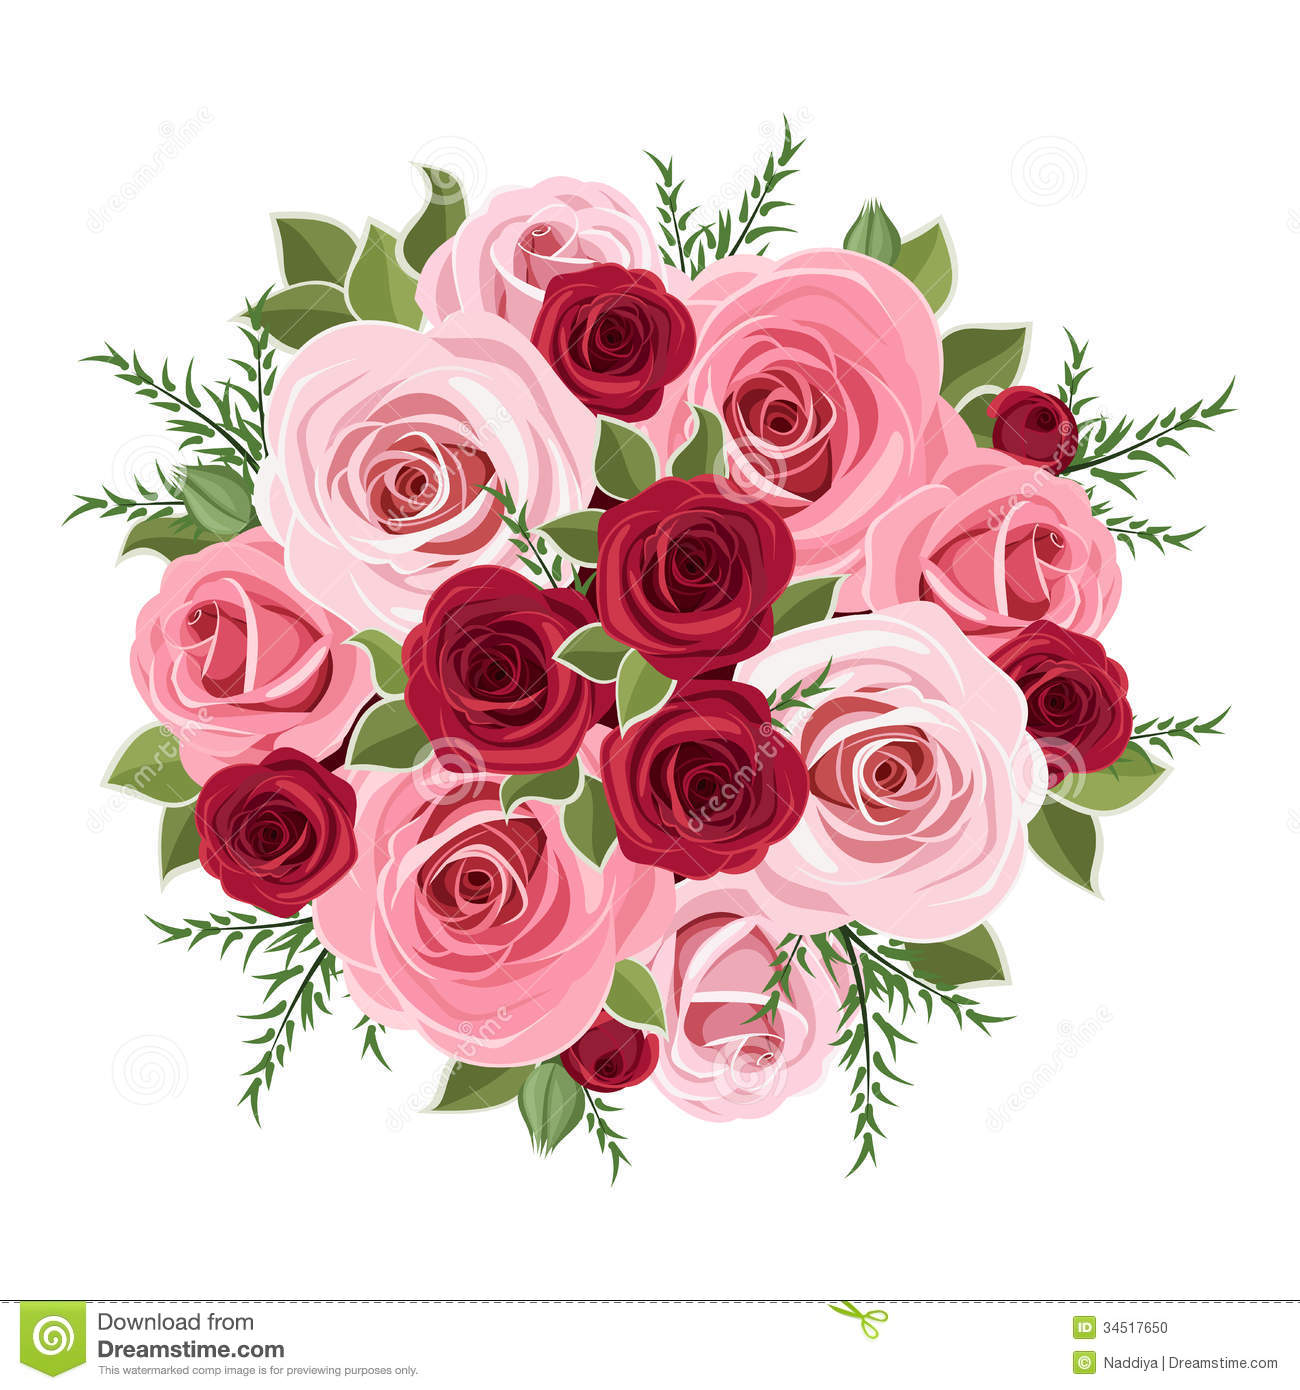 Bouquet clipart pink rose bouquet Collection bouquet bouquet Clipart green